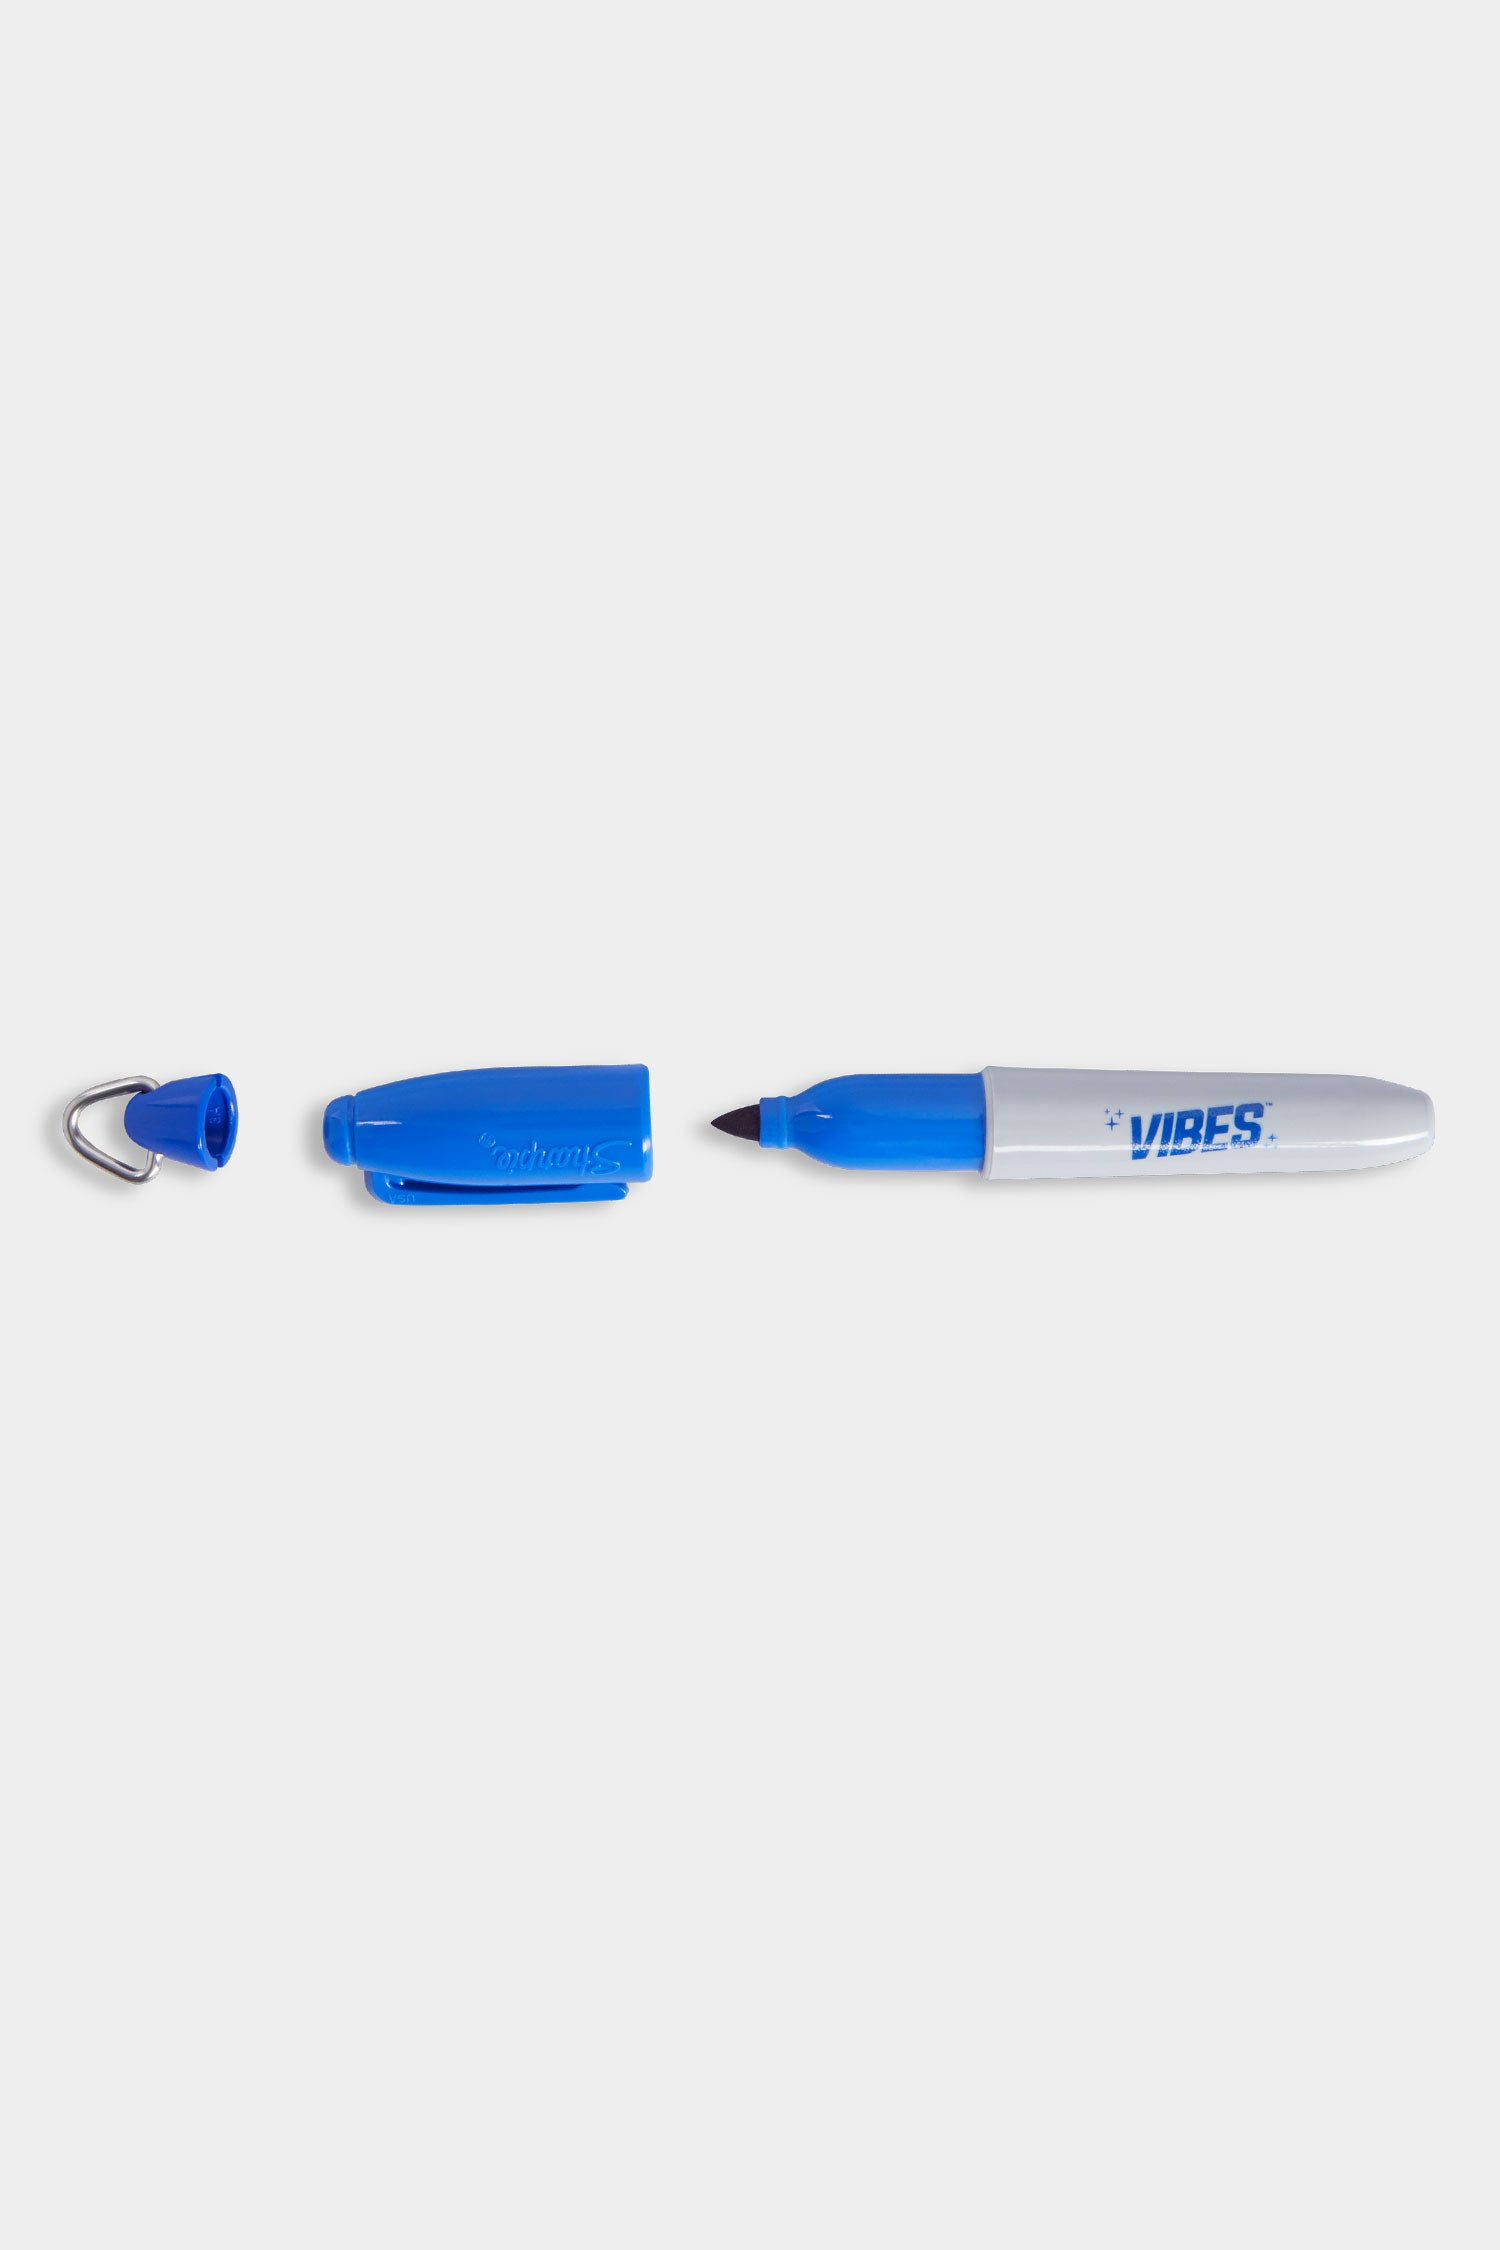 Vibes X Sharpie Mini Marker 3-Pack